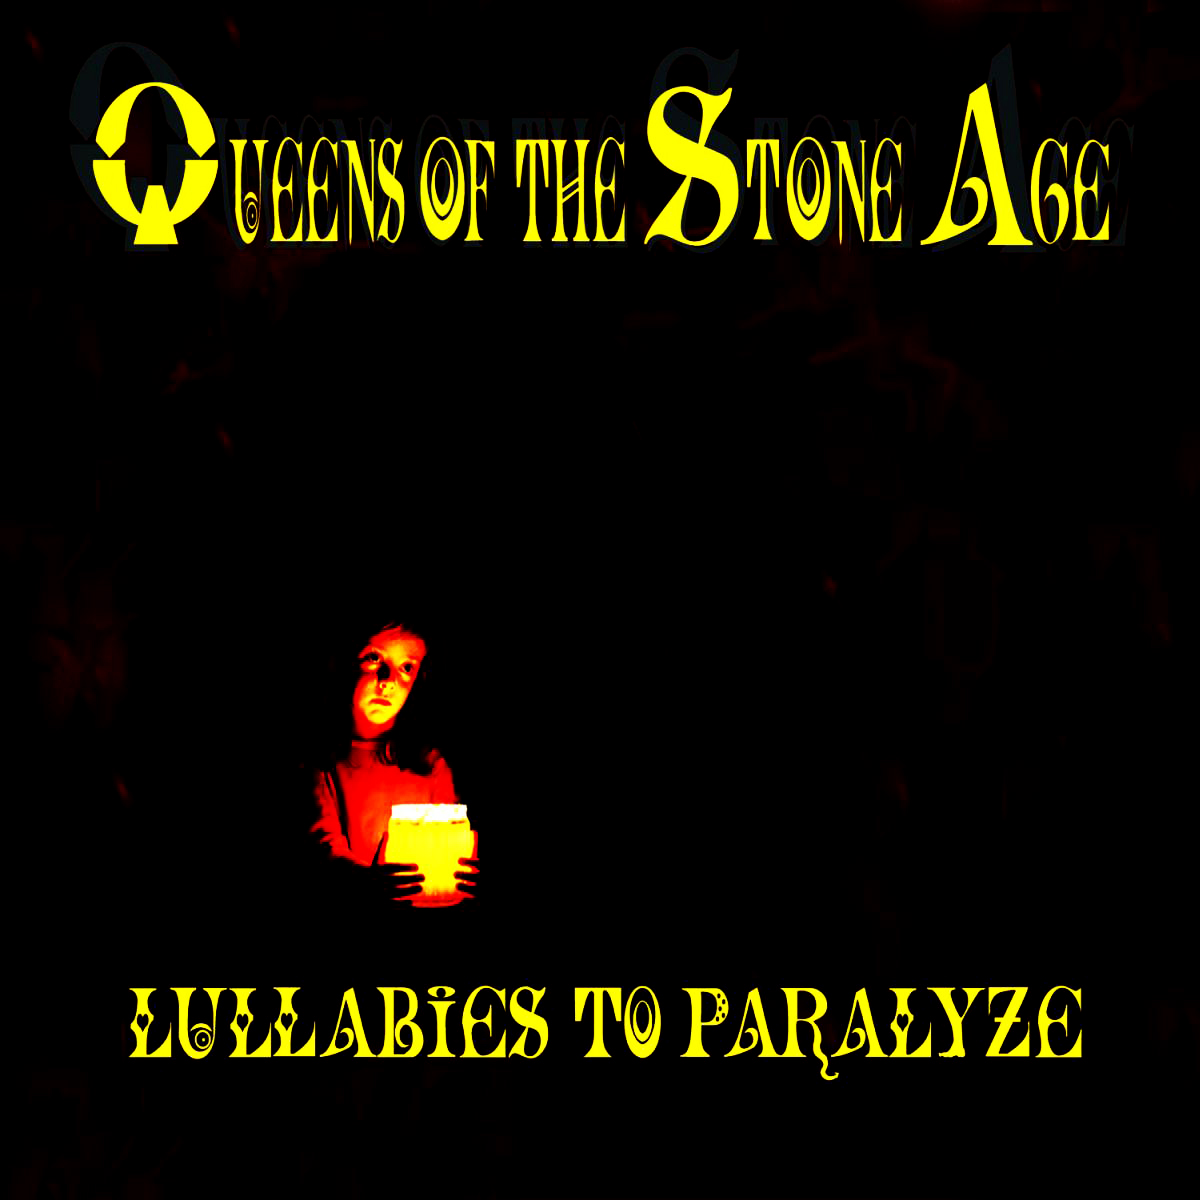 Queens of the Stone Age 2005 LullabiesTo Paralyze album cover